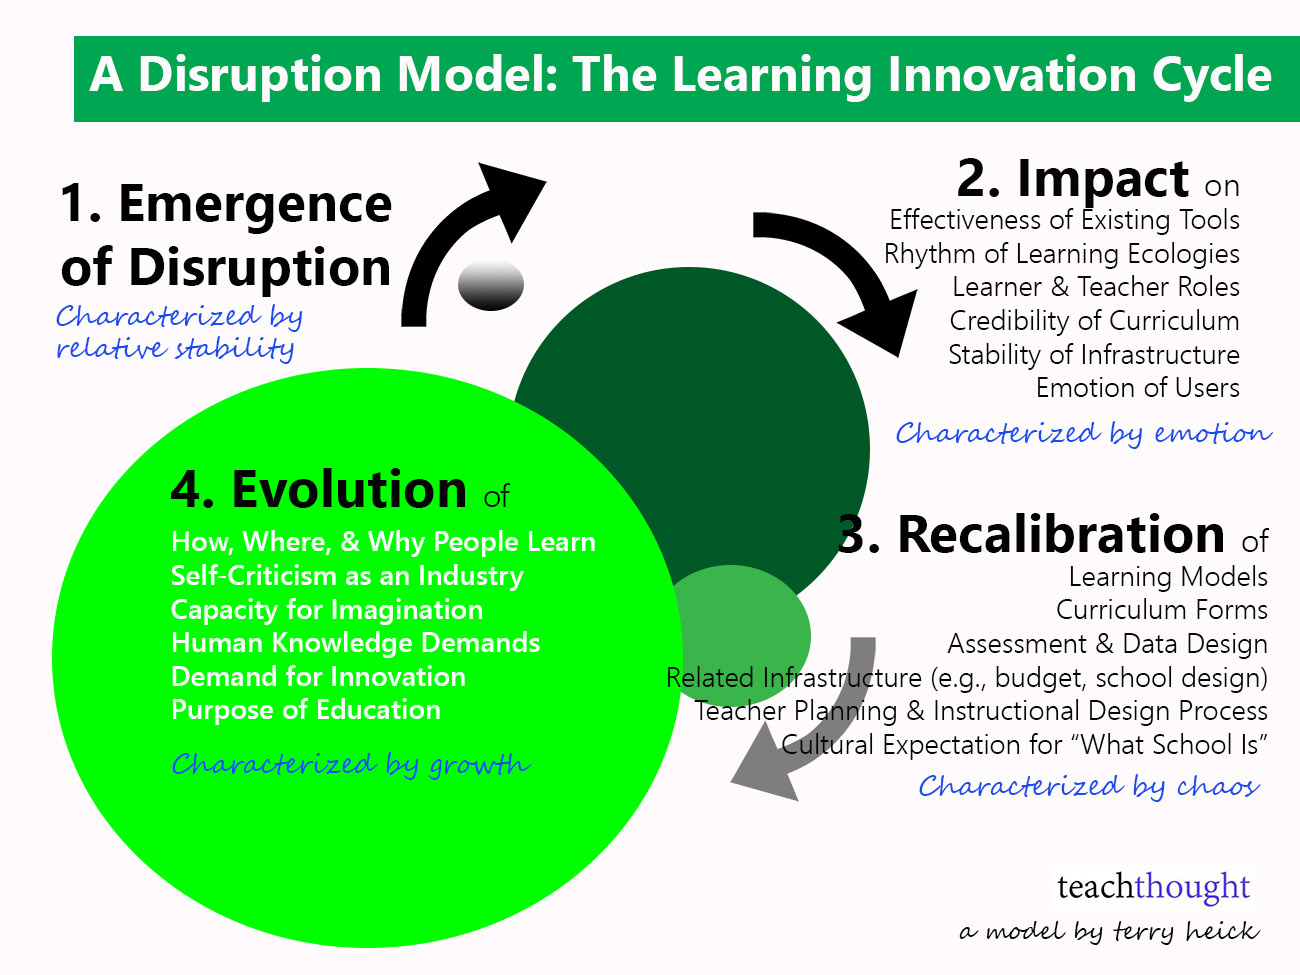 The Learning Innovation Cycle